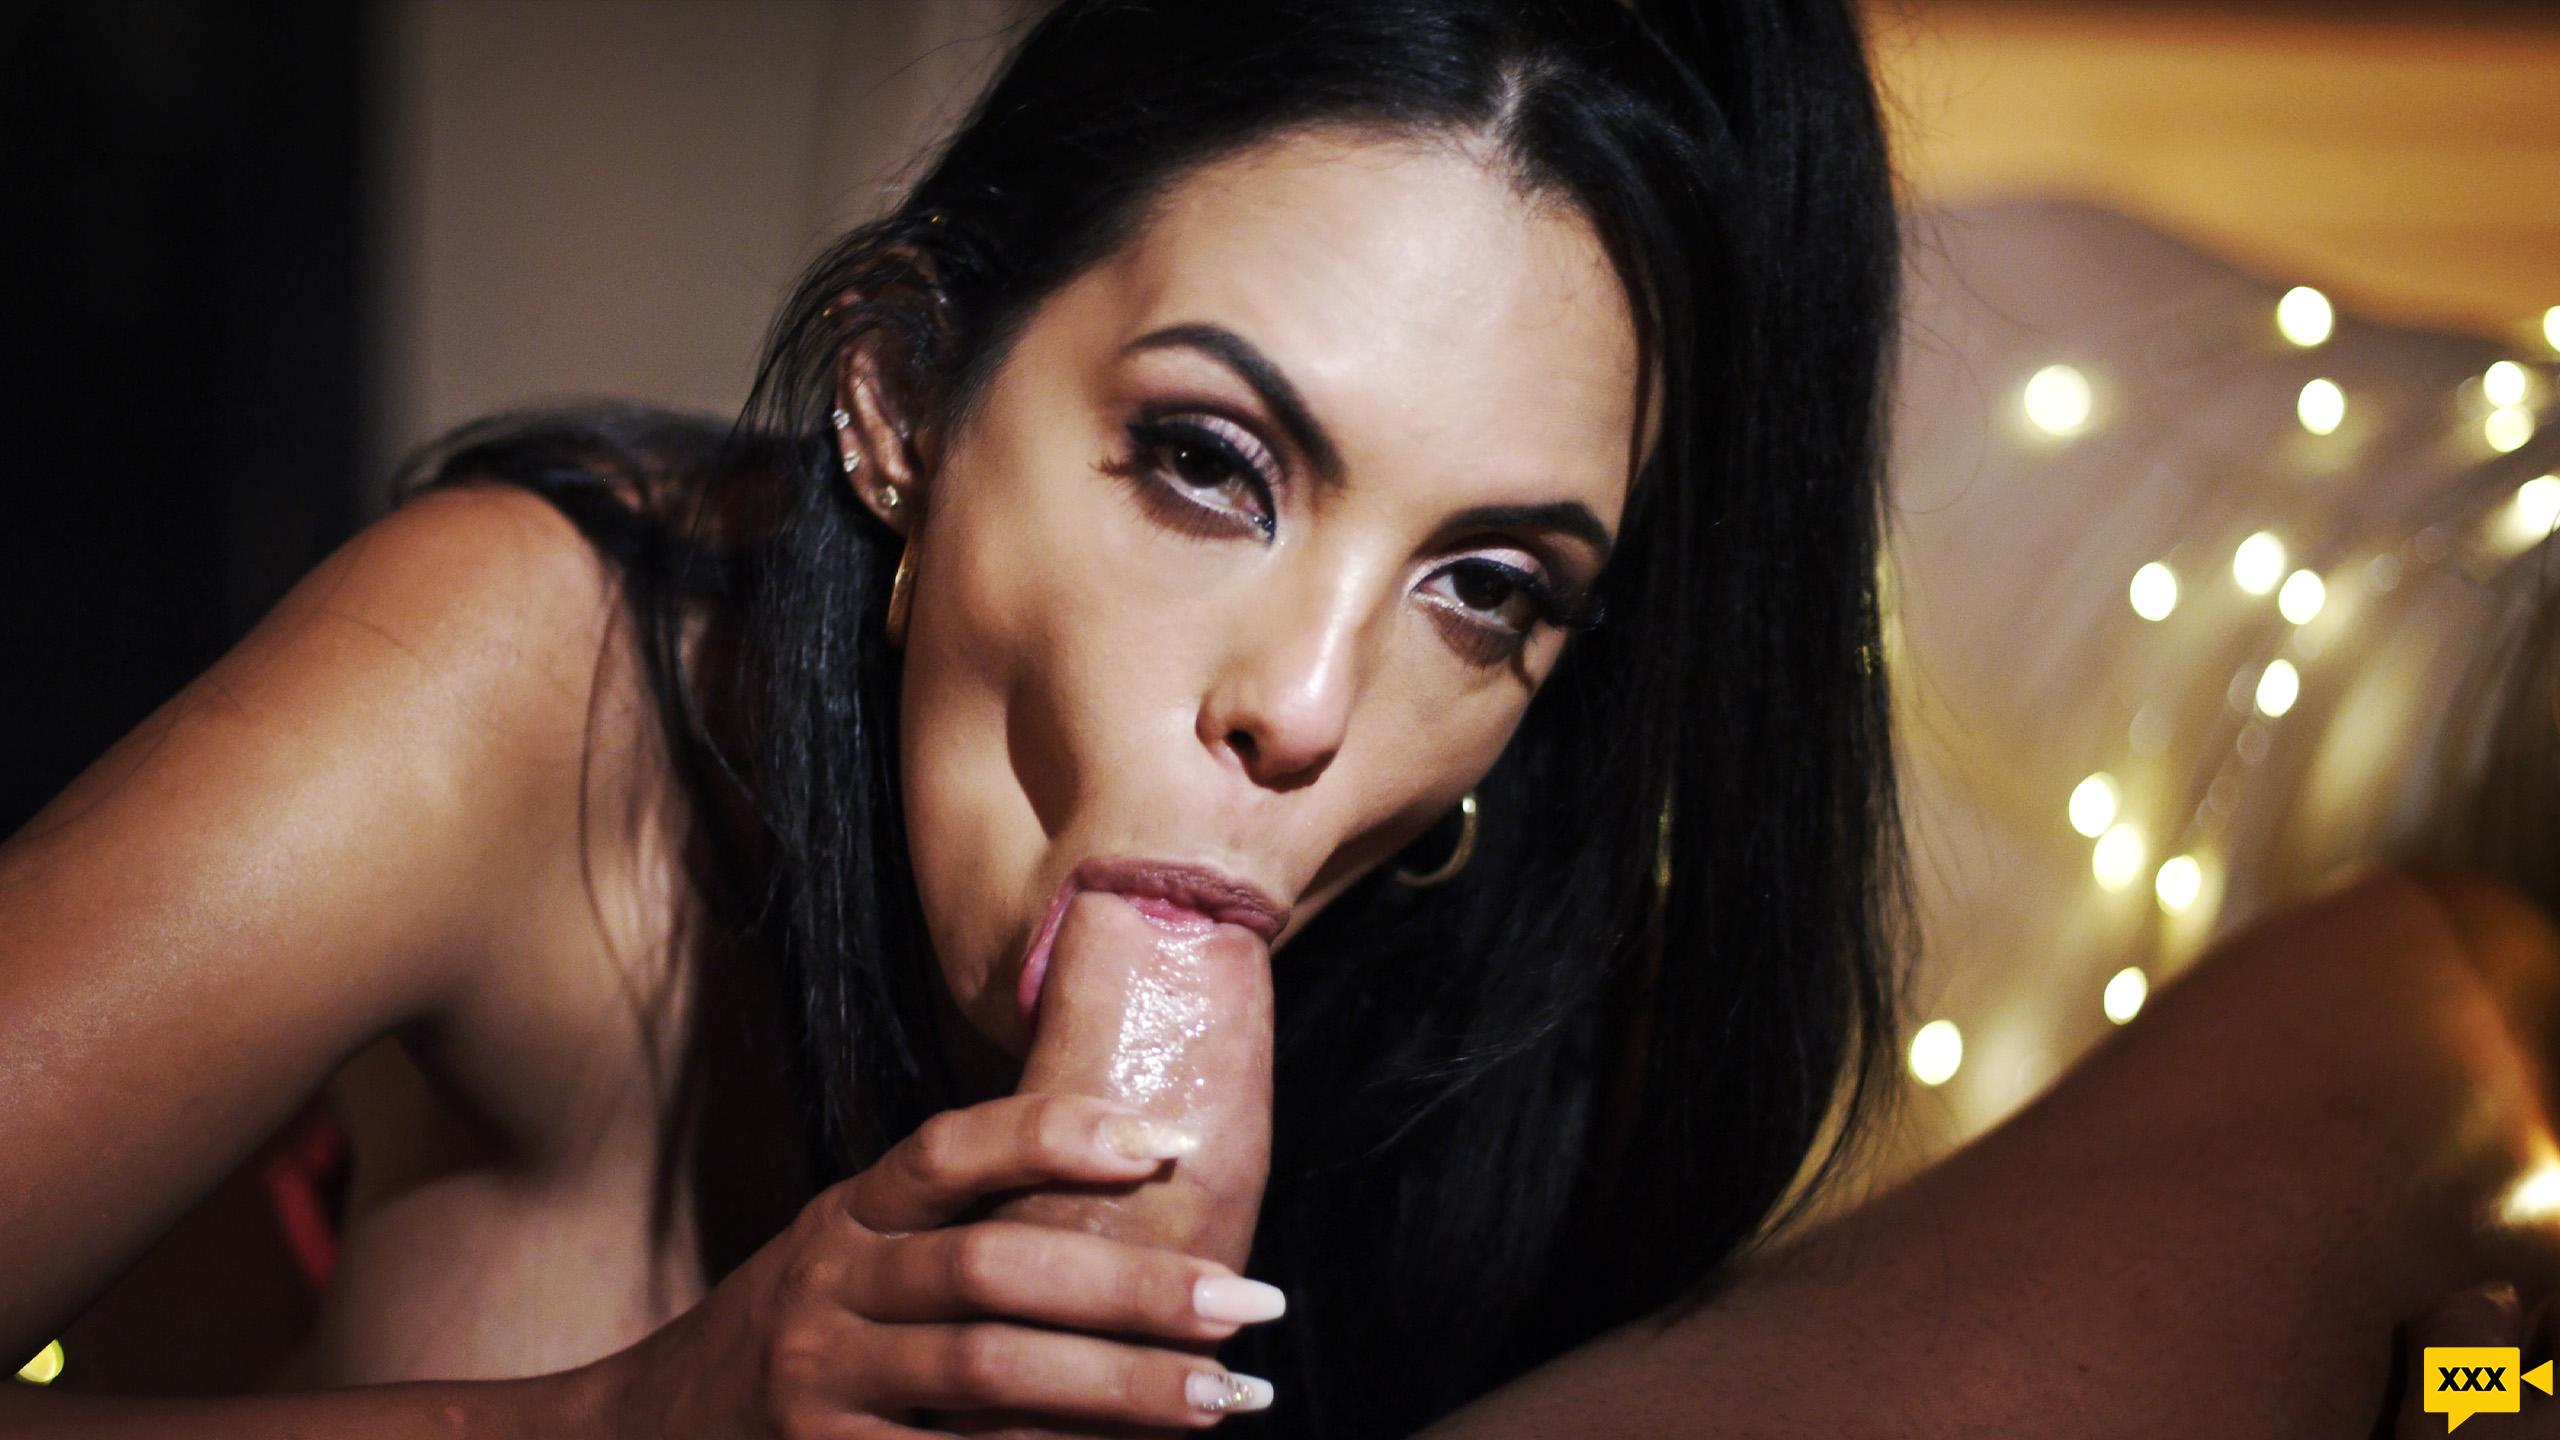 [18+] 5K Porn – Katrina Moreno: The MILF and Maximo (2020) HD 465MB